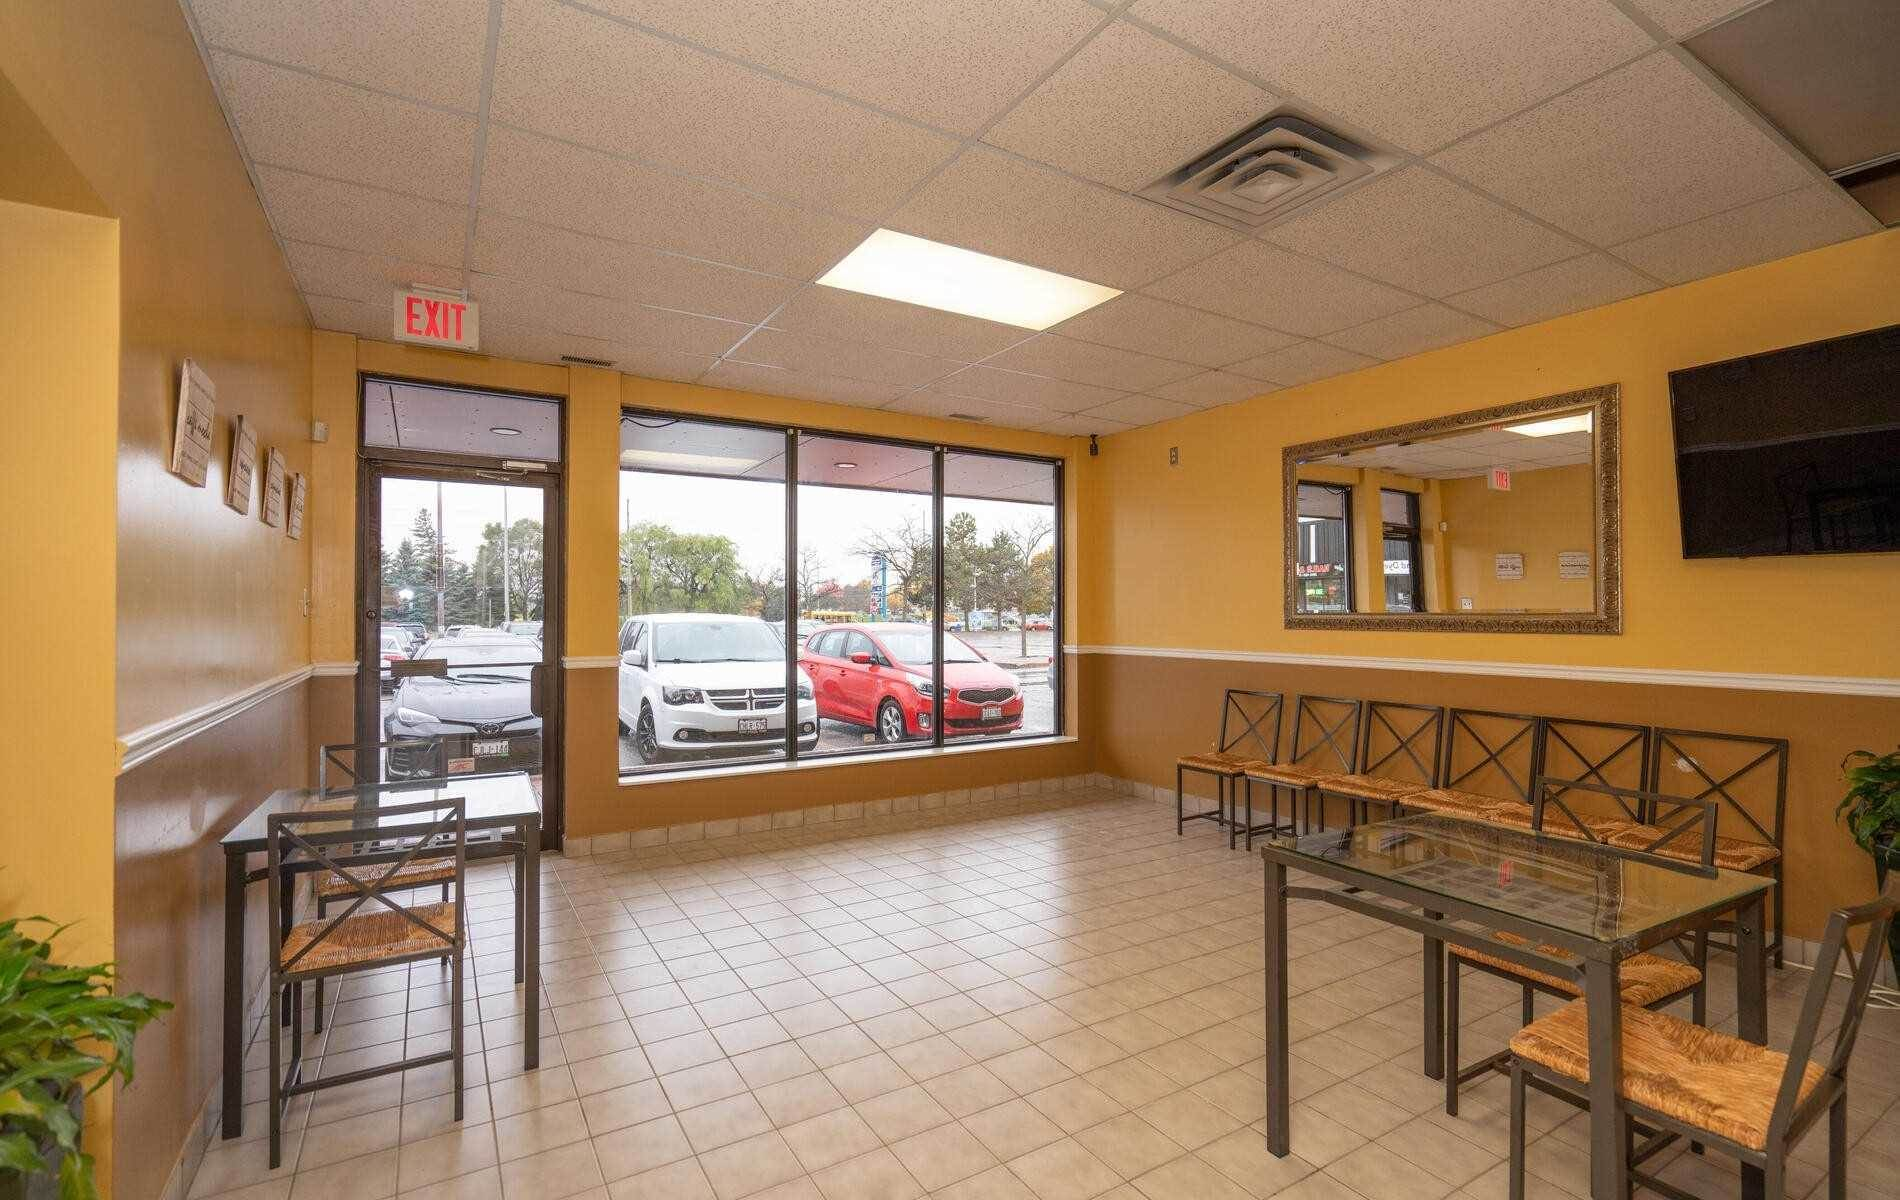 4 Mclaughlin Rd S in Brampton - Commercial For Sale : MLS# w5140894 Photo 9